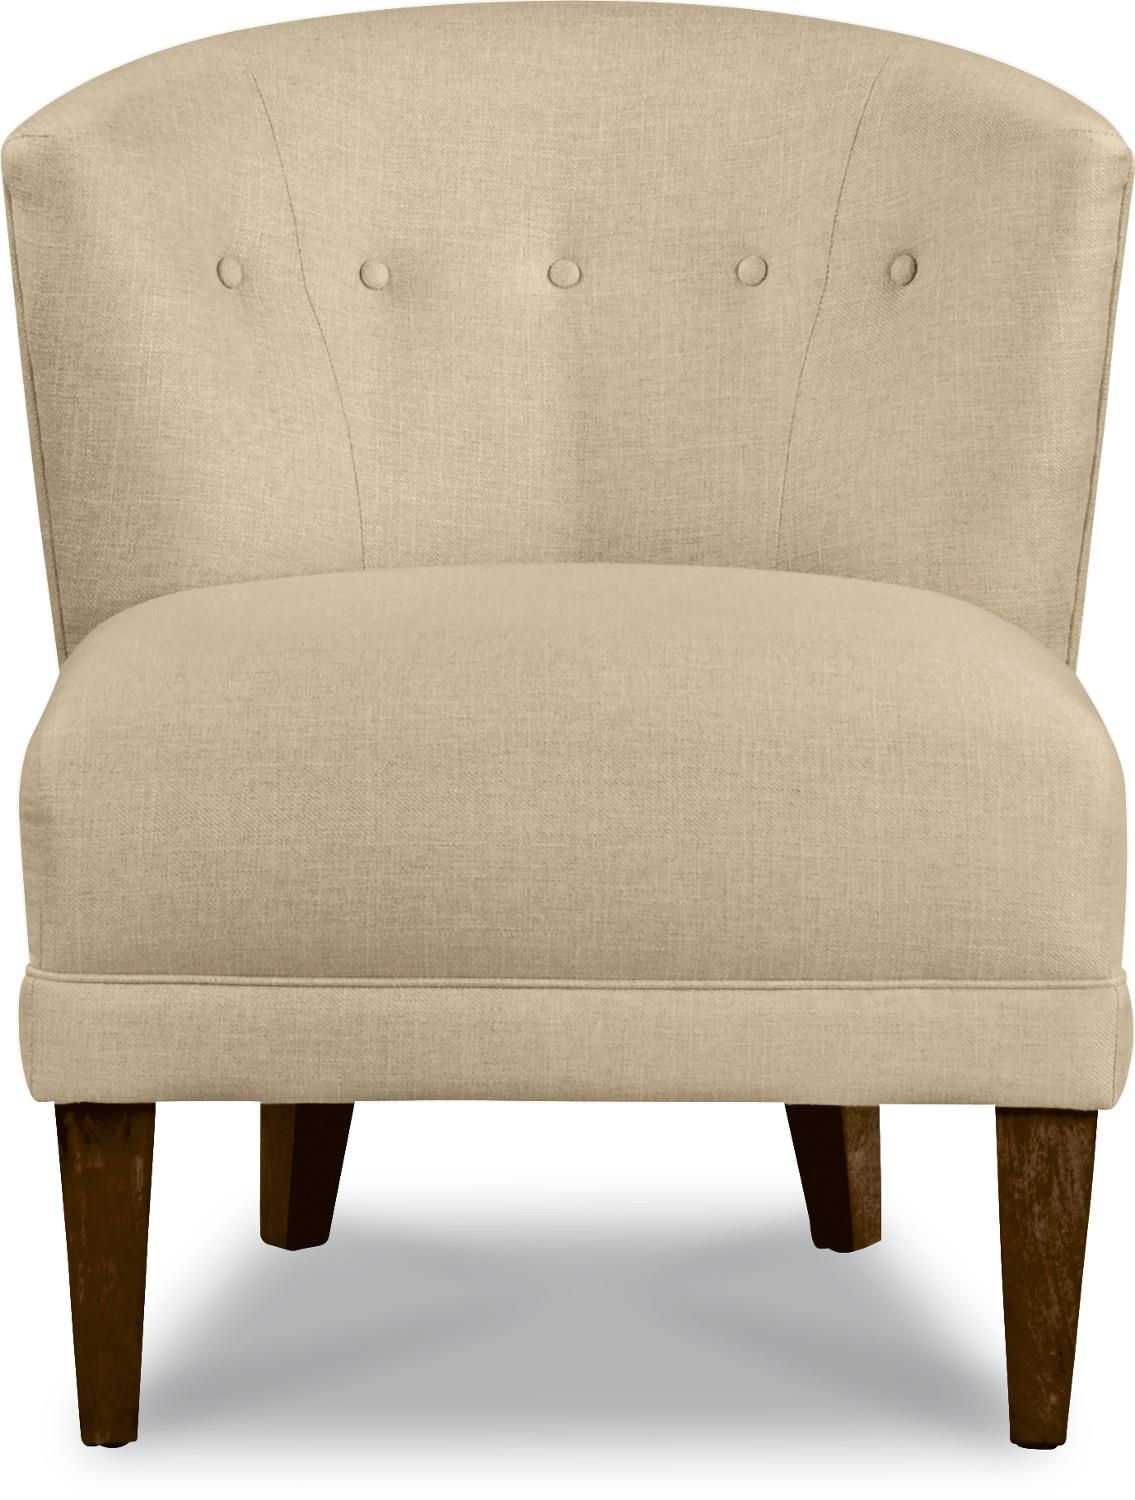 Nolita Accent Chair with Tapered Wood Legs